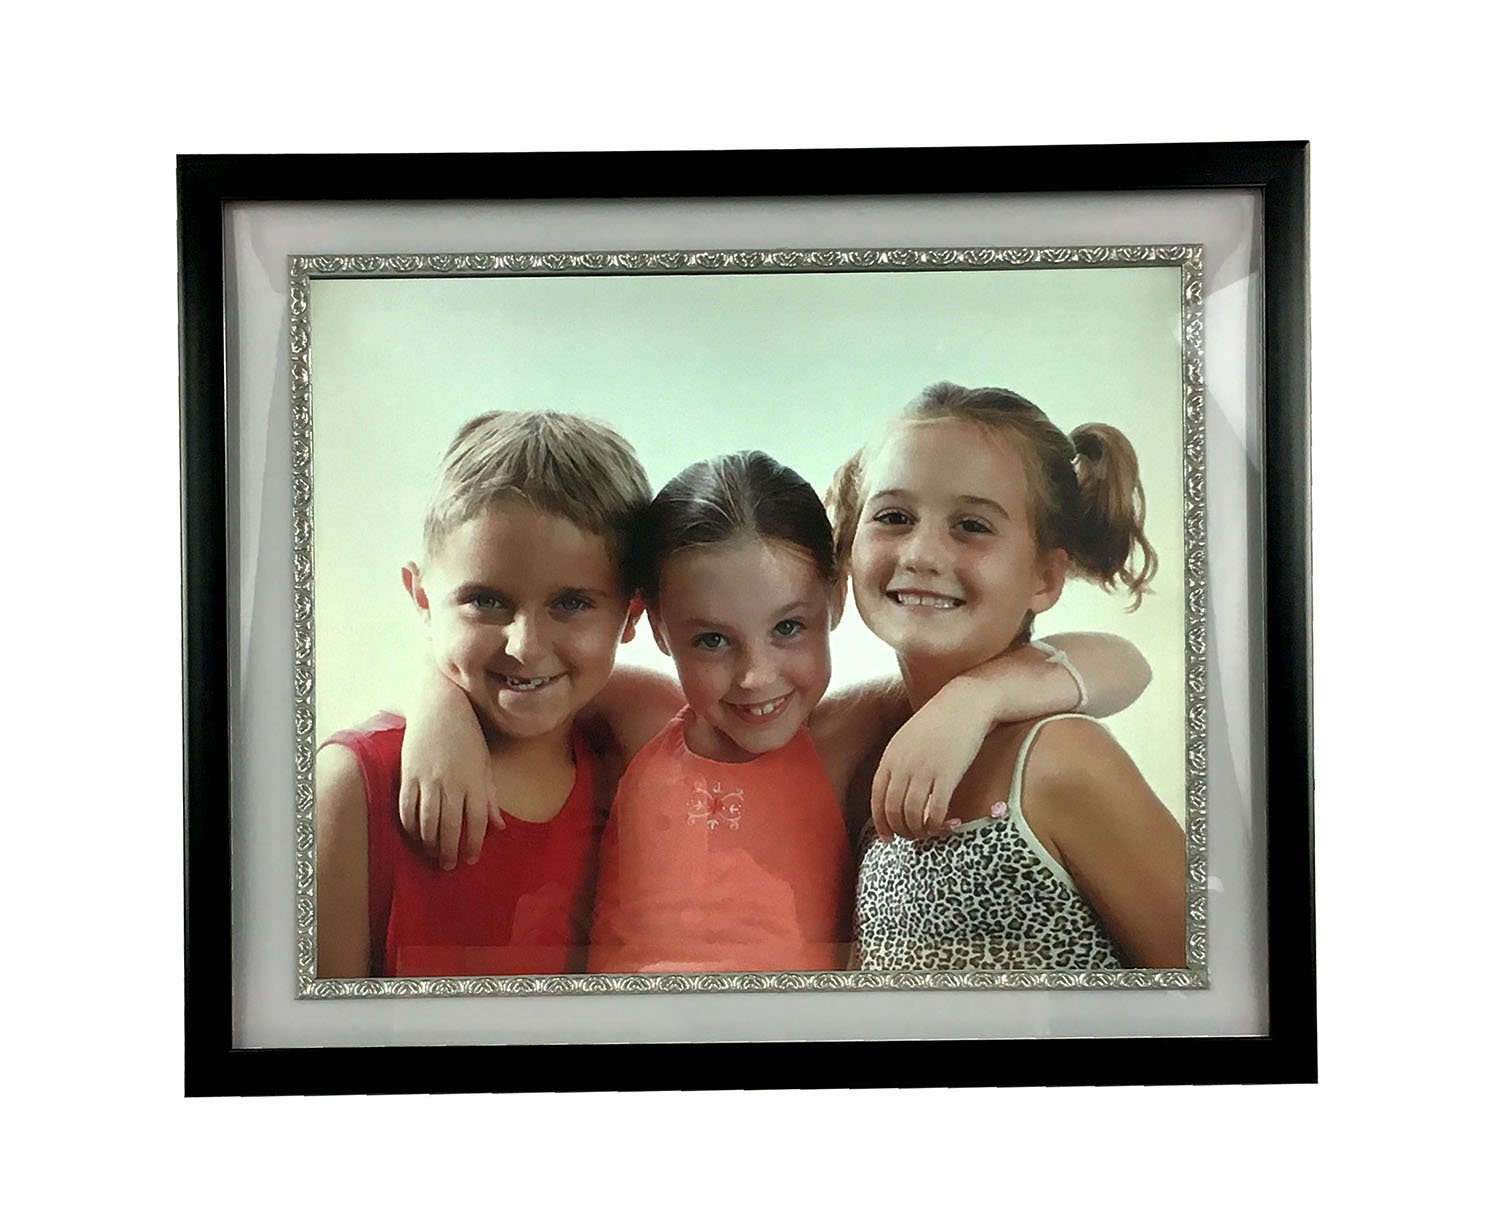 Digital Spectrum MemoryVUE Gallery MV-1700 Plus 17-Inch Digital Picture Frame (Black)